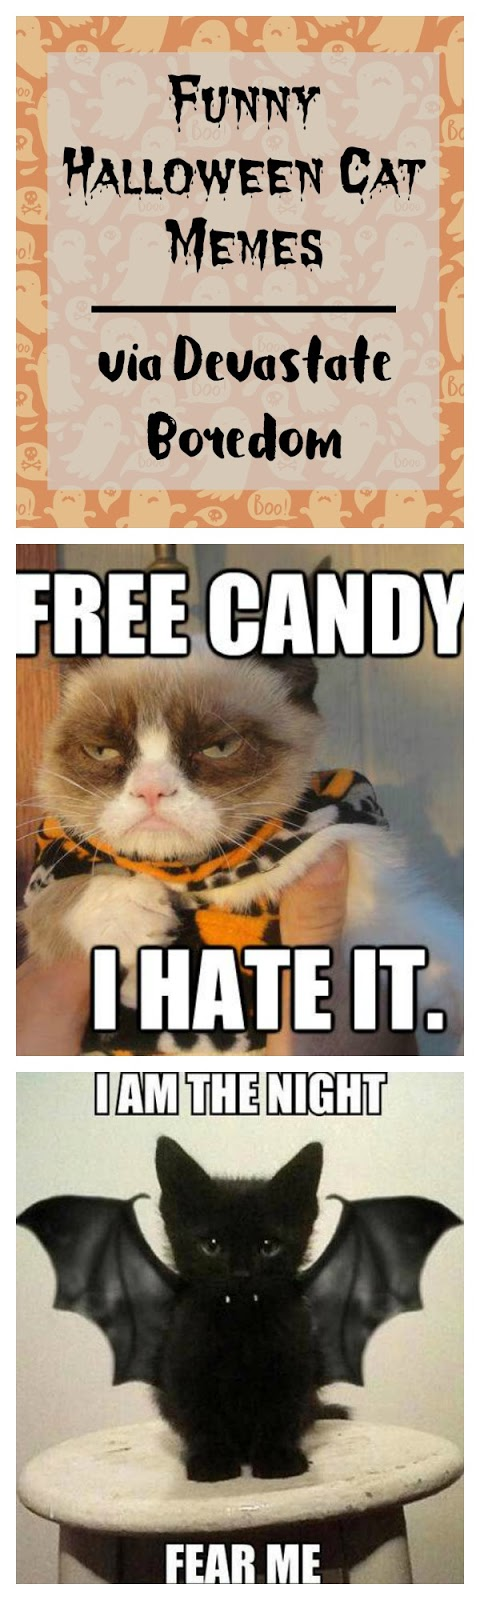 click for more halloween cat funnies funny halloween cat memes cartoons and photos - Funny Cat Halloween